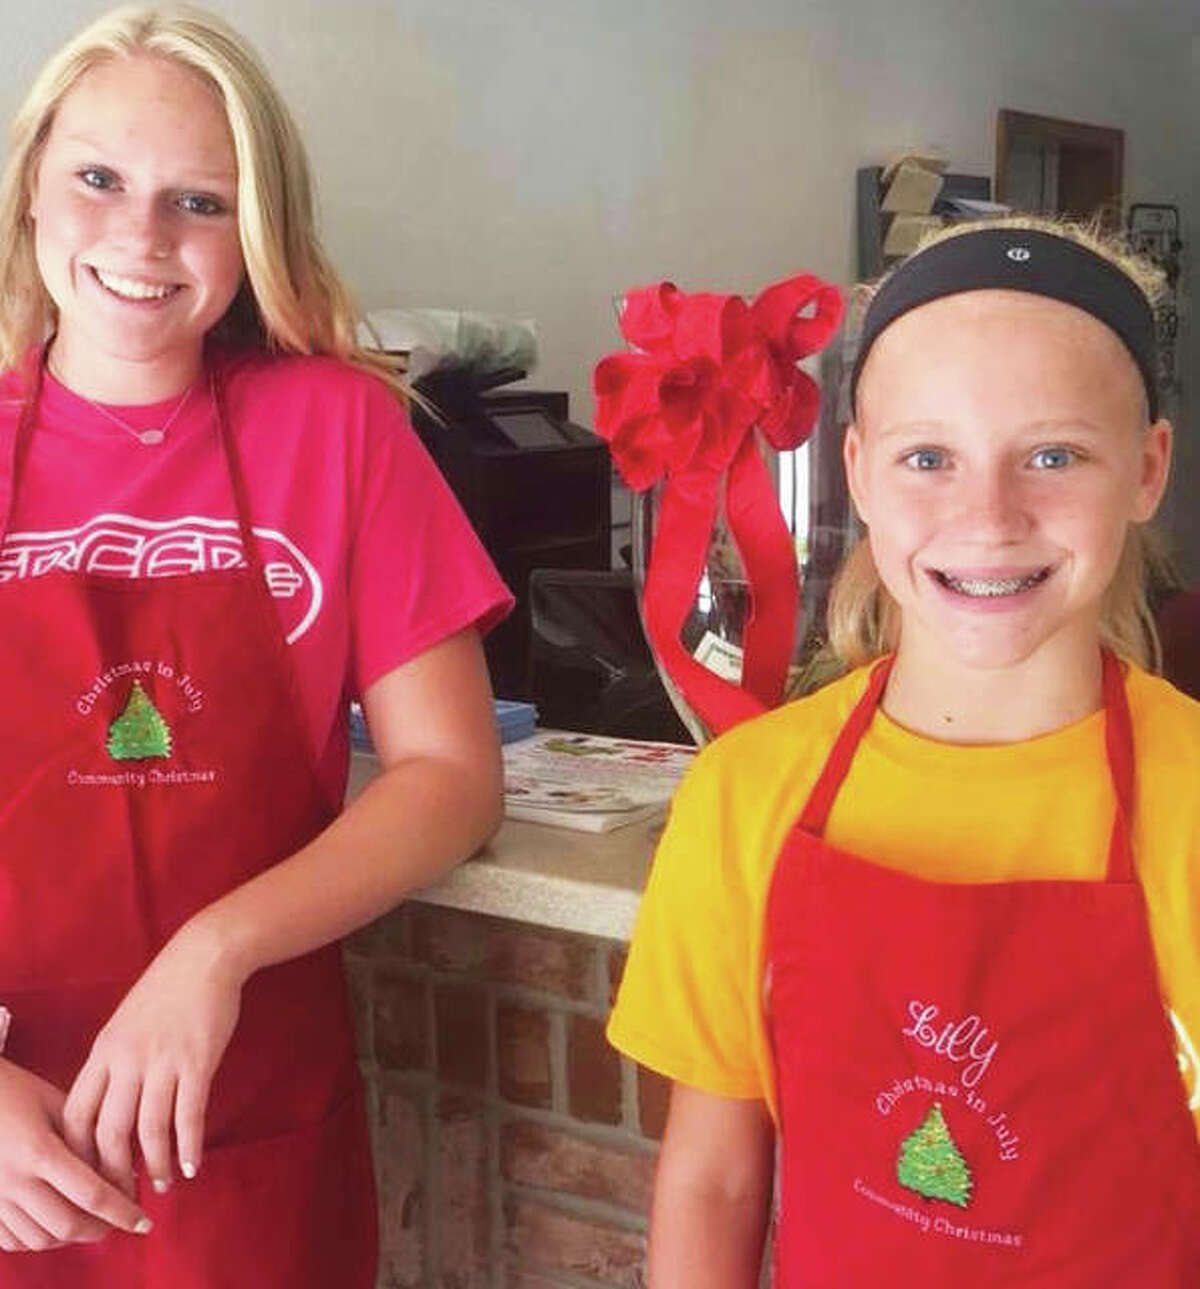 Taylor, left, and Lily Freer, right, help serve the holiday-decorated cookies and cocoa to guests at Freer Auto Body's annual Cookies and Cocoa Community Christmas event.